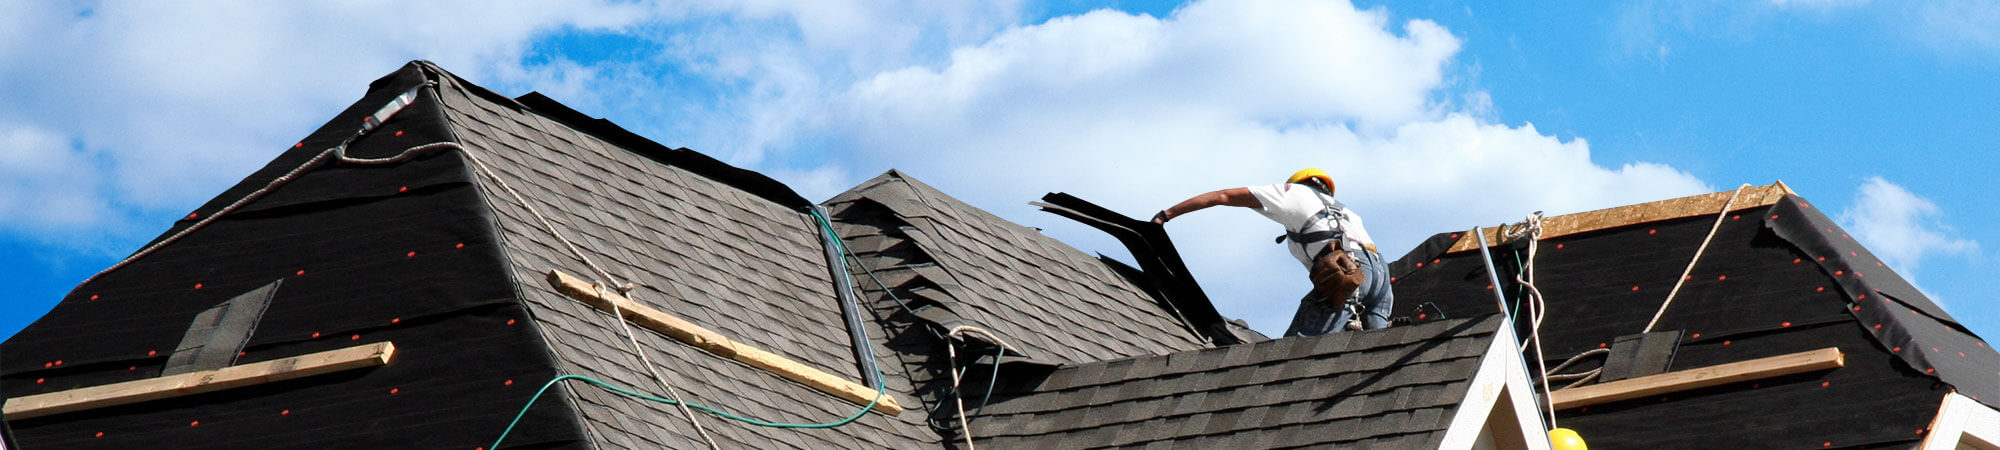 Houston Roof Repair Residential Roofing Service Houston